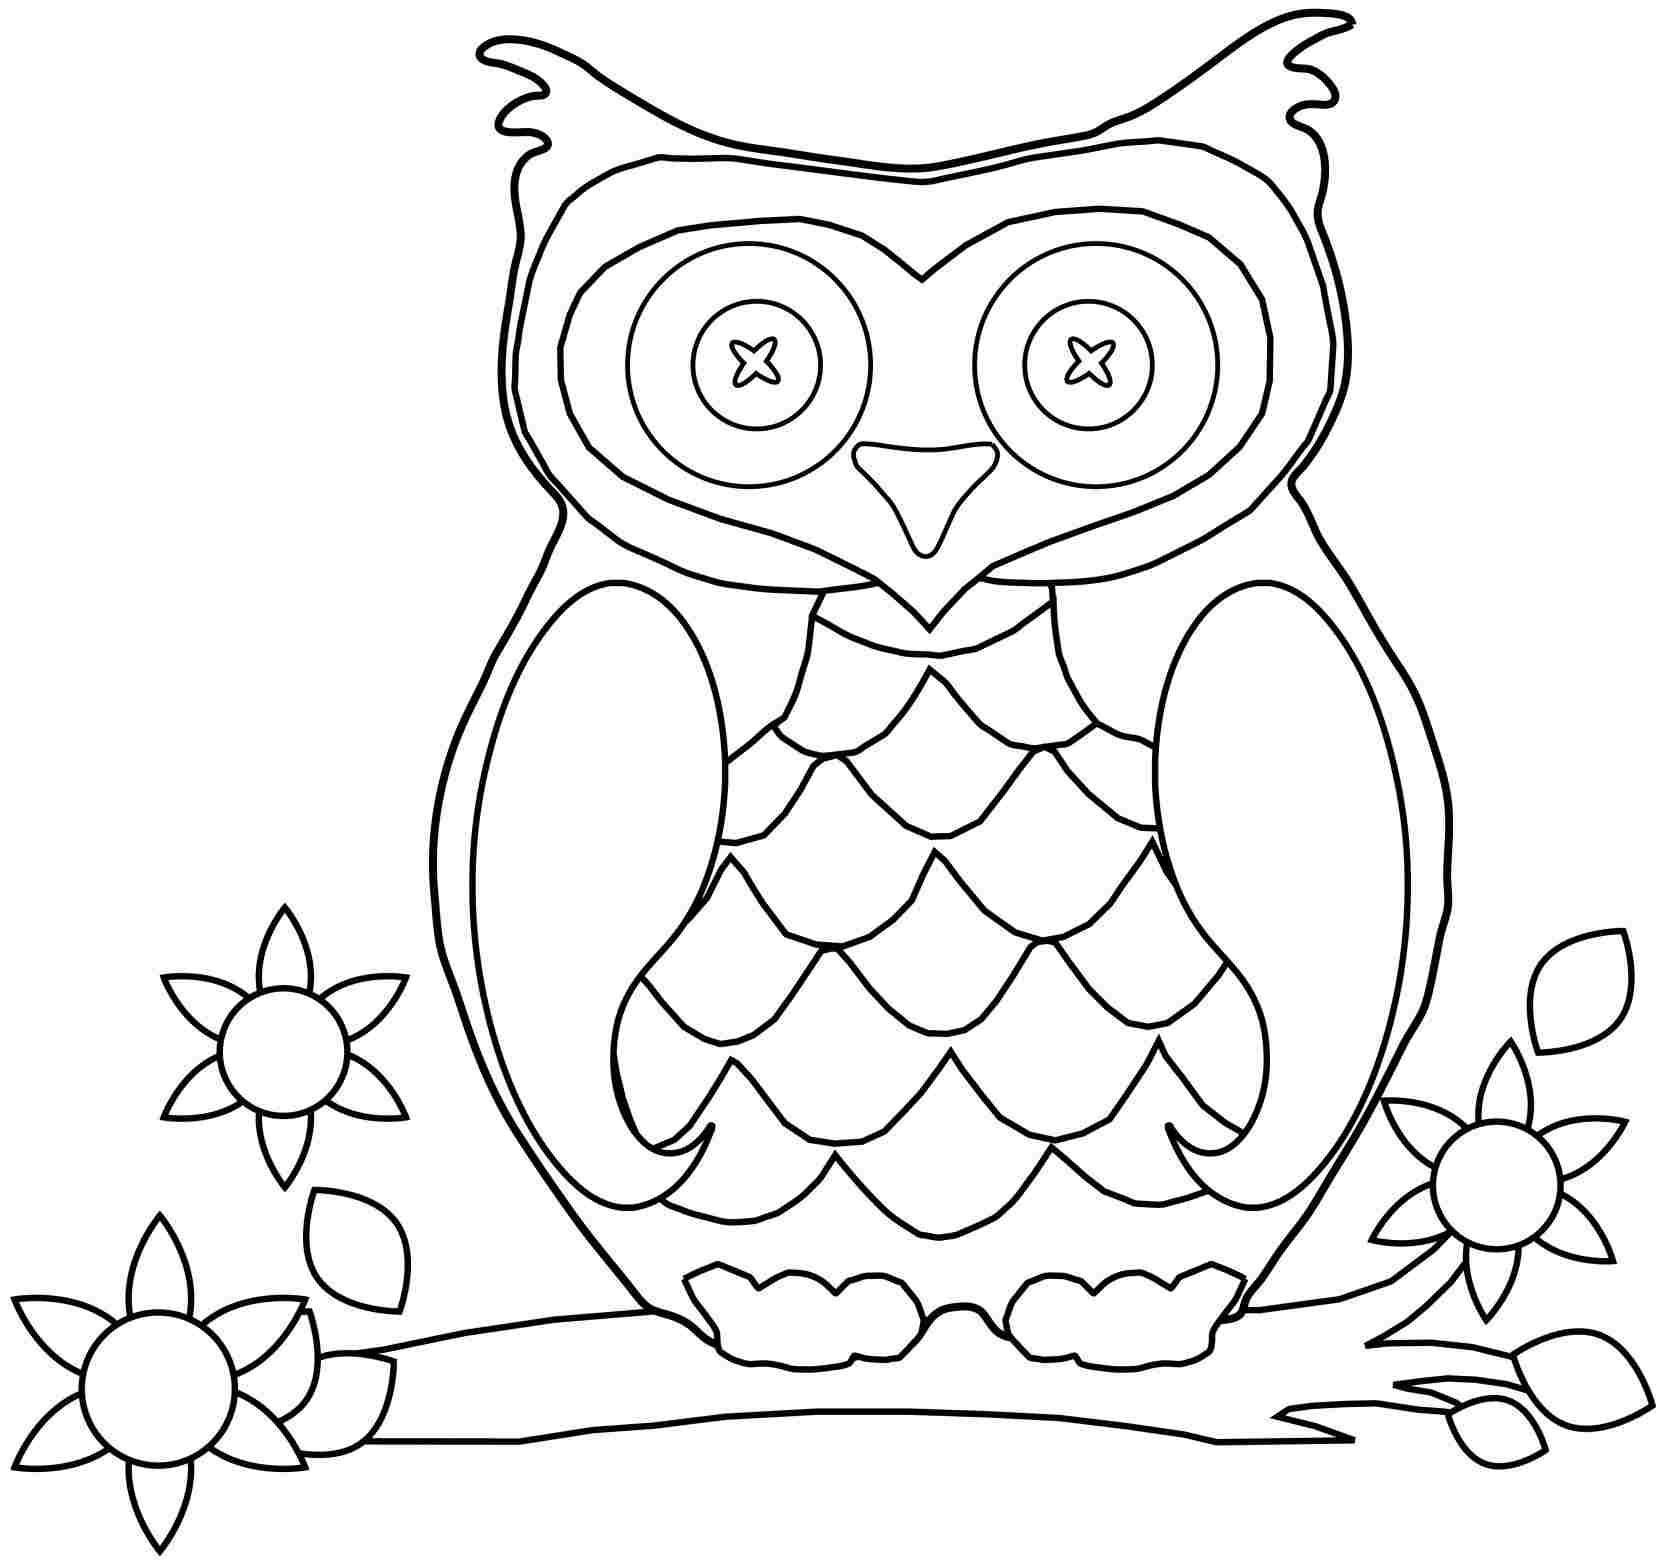 Printable Animal Coloring Pages Owl